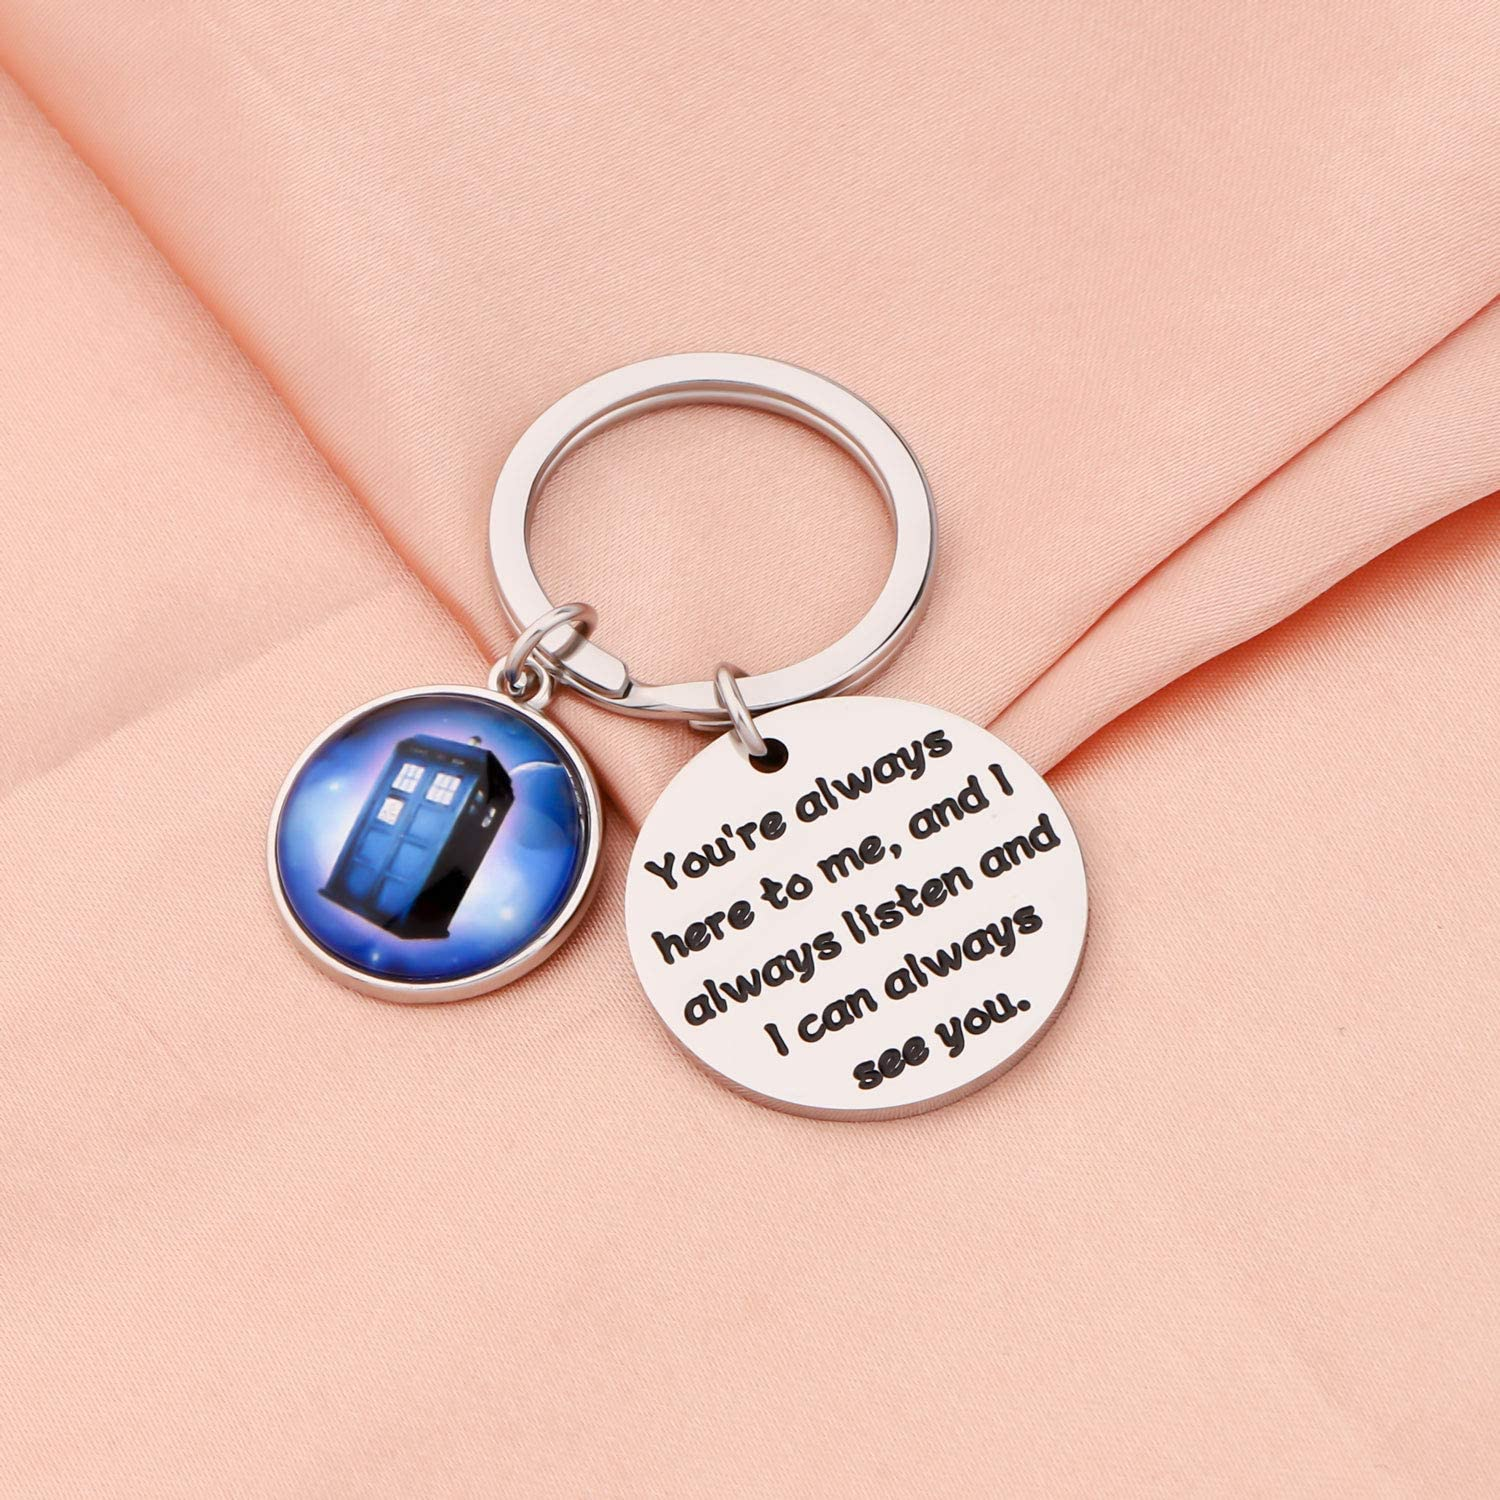 WSNANG Tardis Gift Doctor Who Inspired Jewelry Gift for Dr Who Fans Youre Always Here to Me and I Always Listen and I Can Always See You Keychain Youre Always Here KC